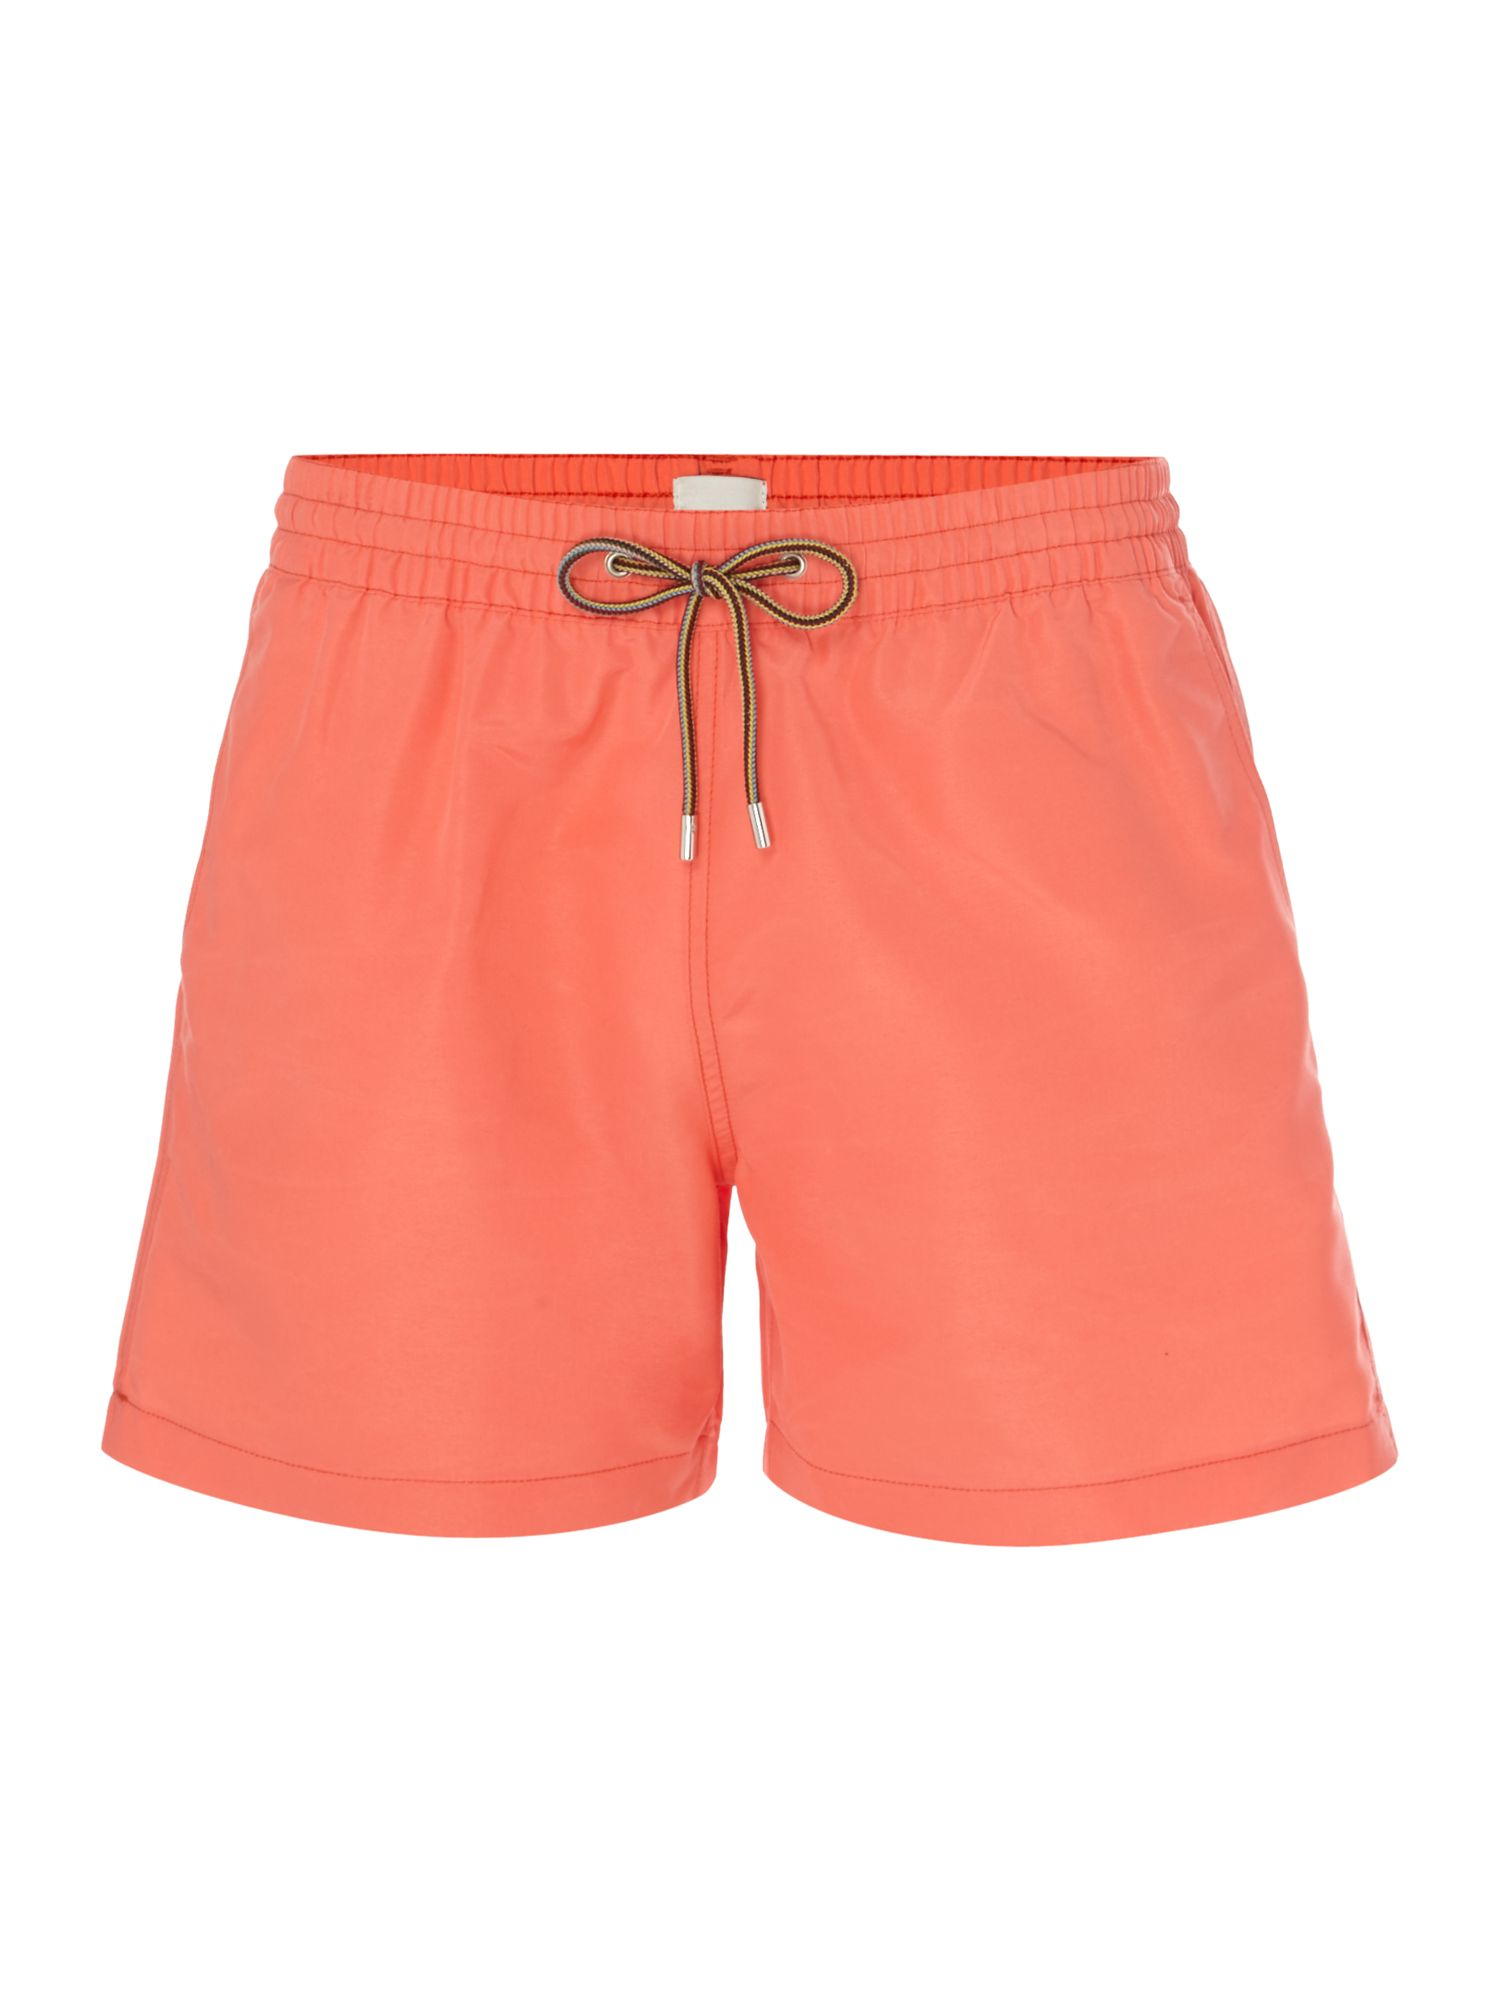 Men's Paul Smith Solid Colour Classic Swim Shorts, Pink